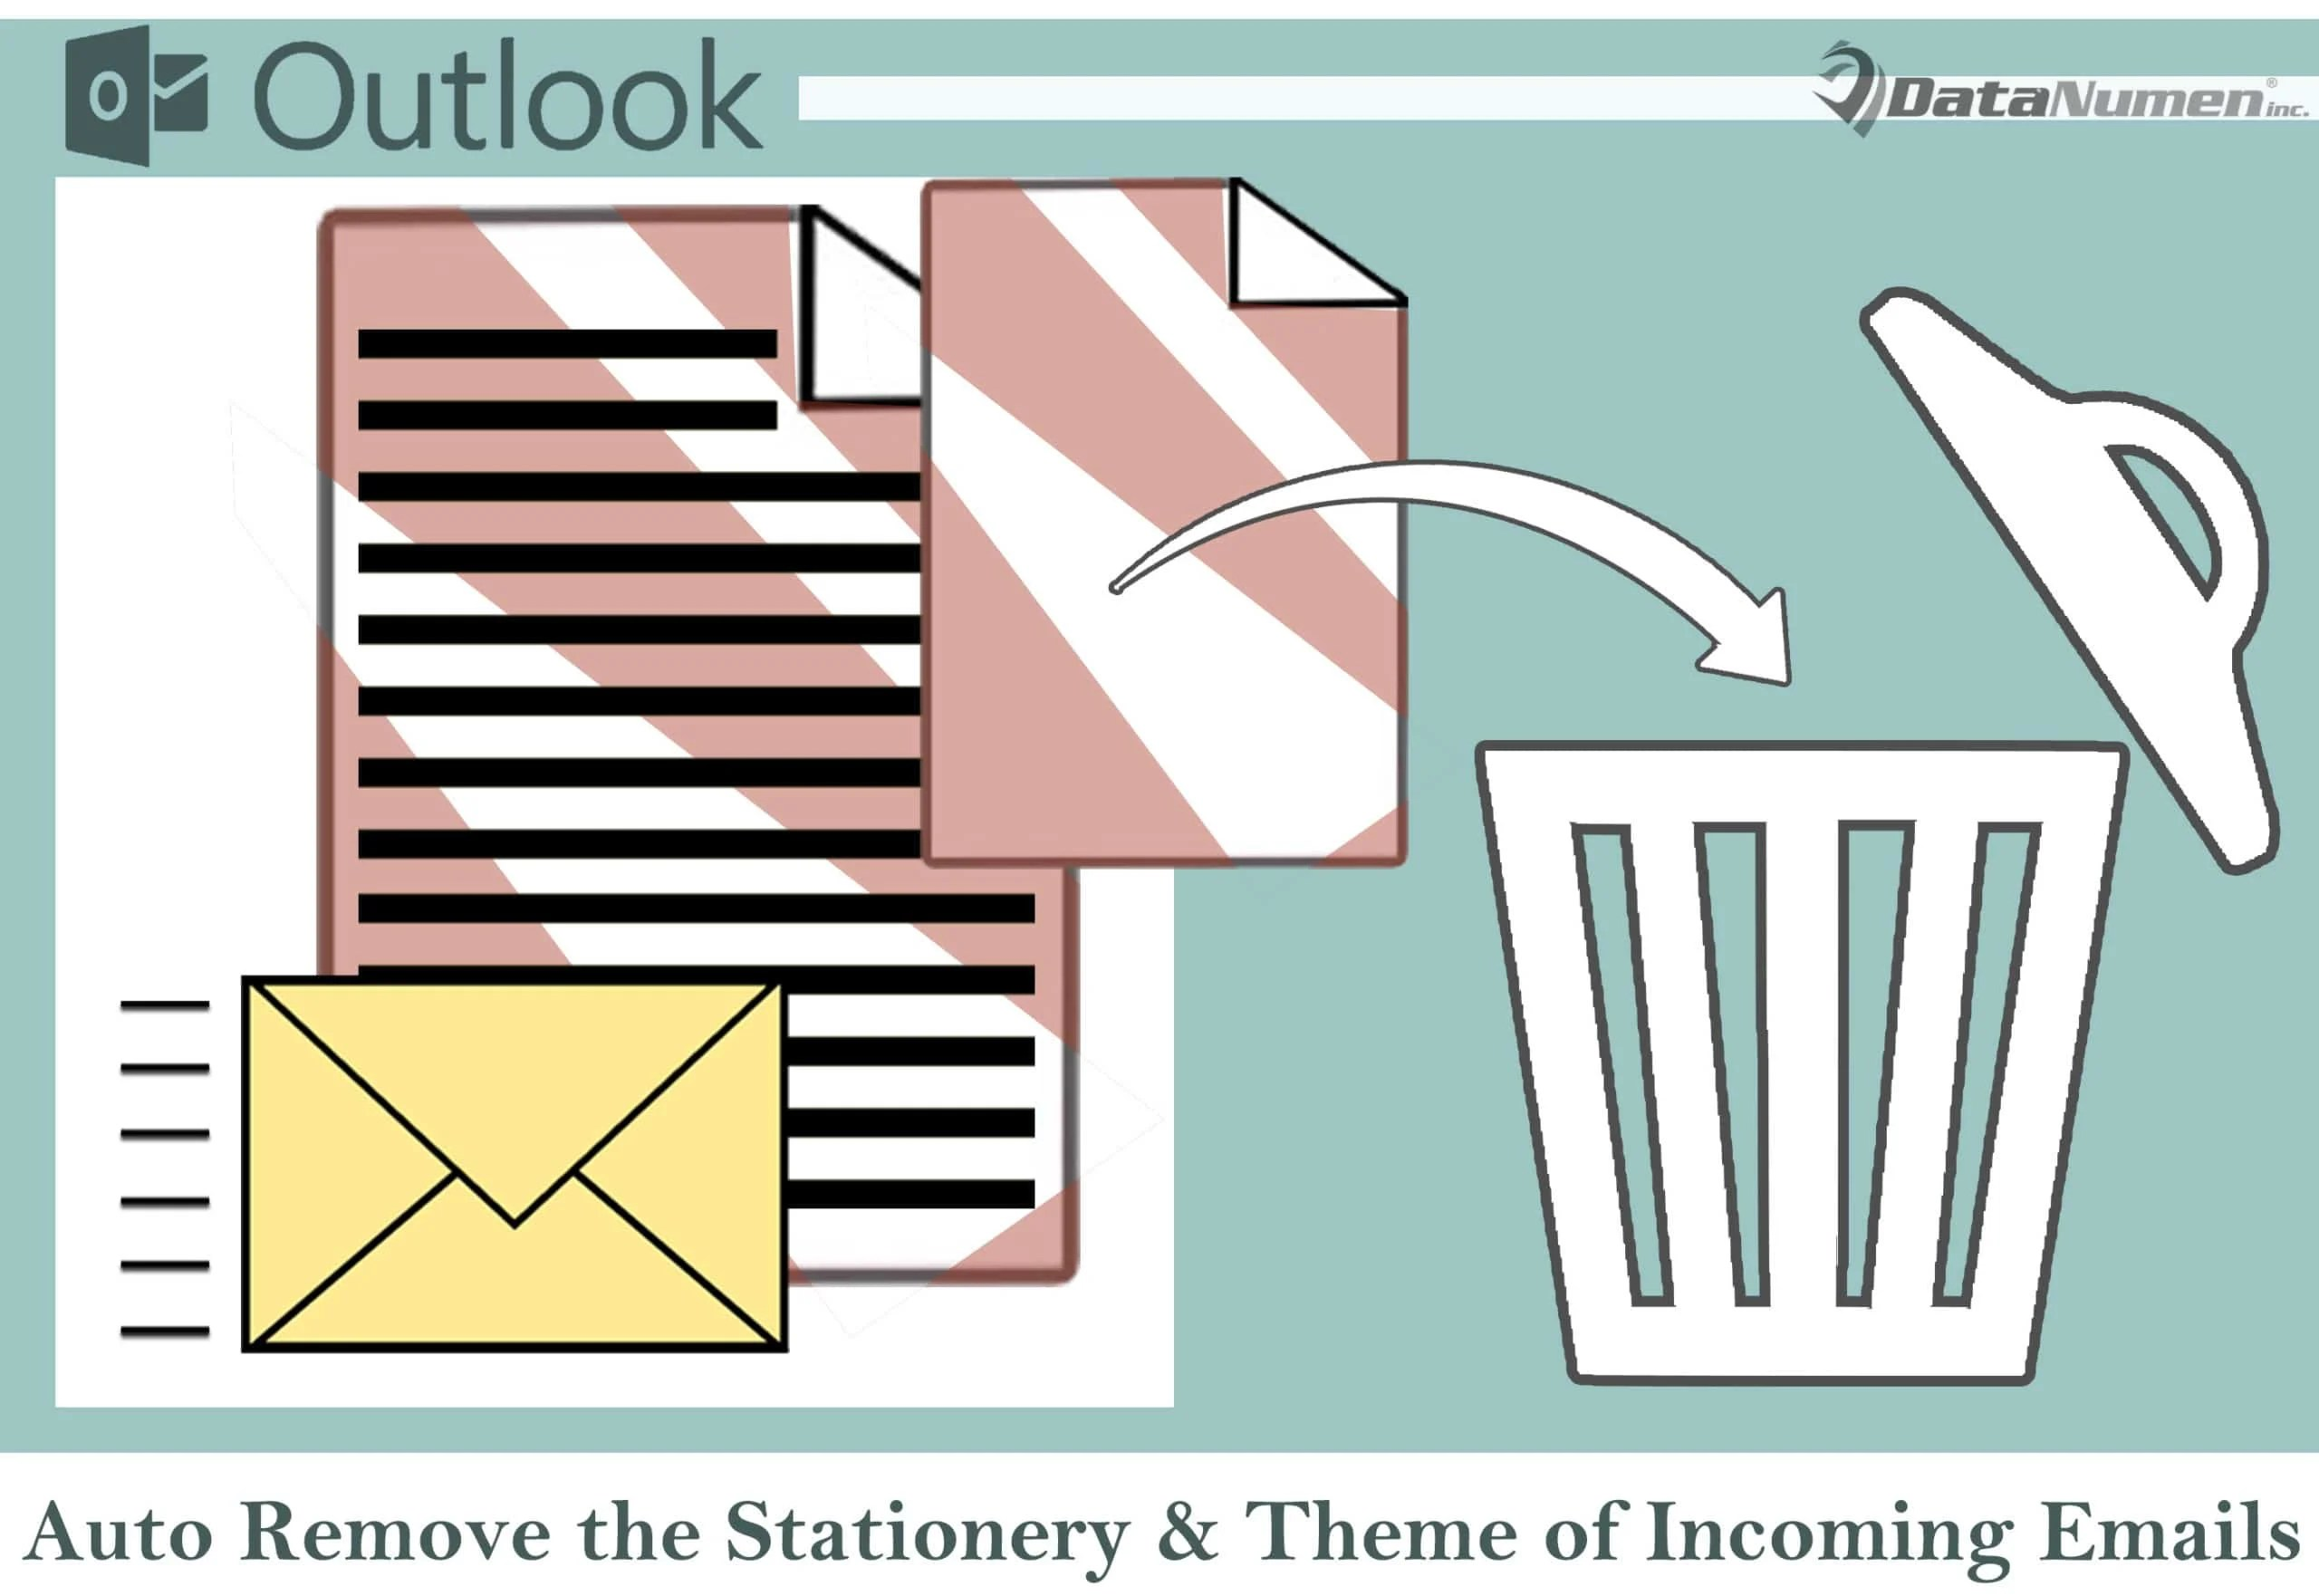 2 Methods to Auto Remove the Stationery & Theme of Incoming Emails in Your Outlook